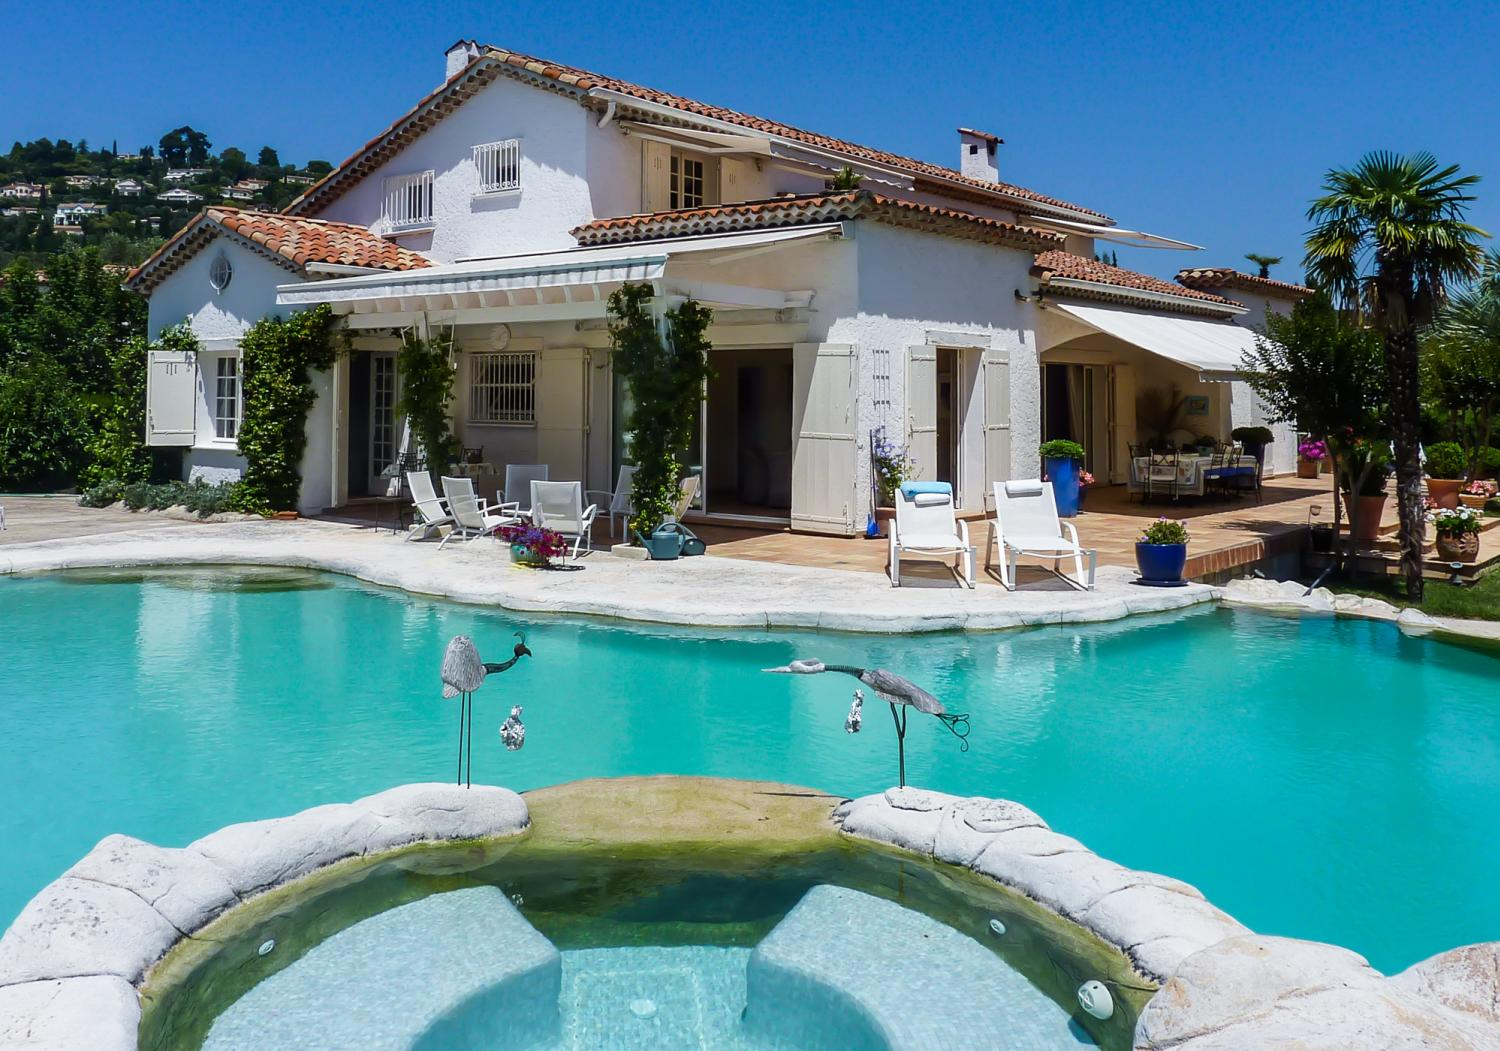 Outdoor Pool and Jacuzzi, L'Estivale, Mougins, Cote d'Azur.